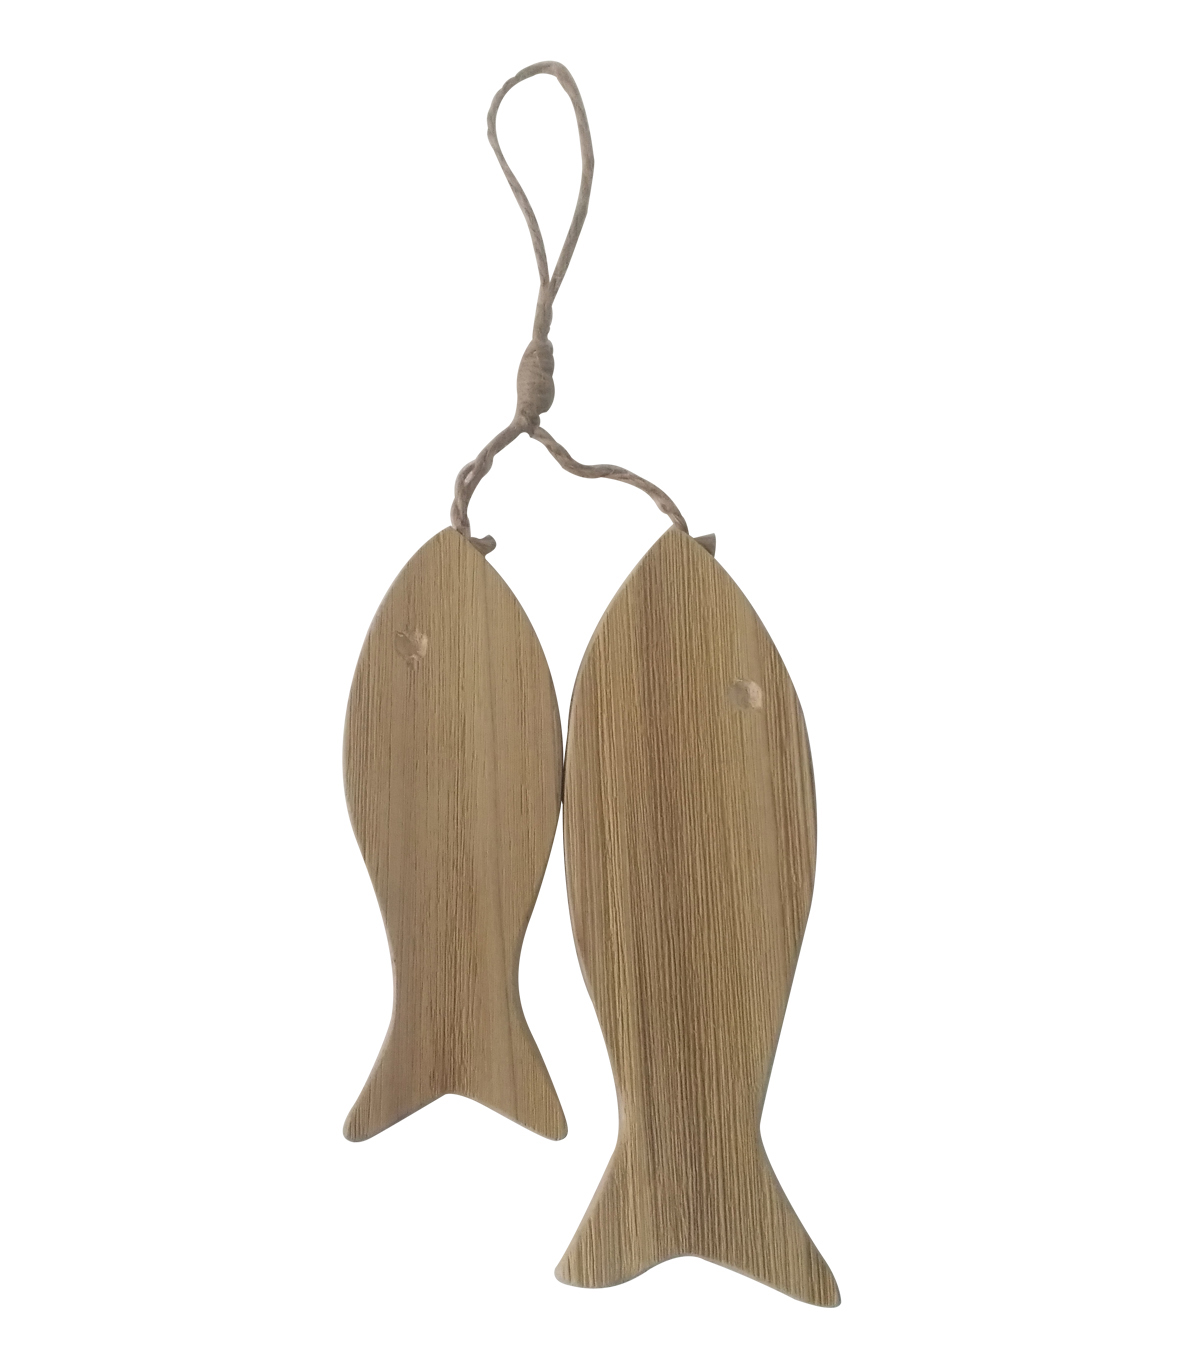 Camp Ann Wooden Fish Hanging Wall Decor